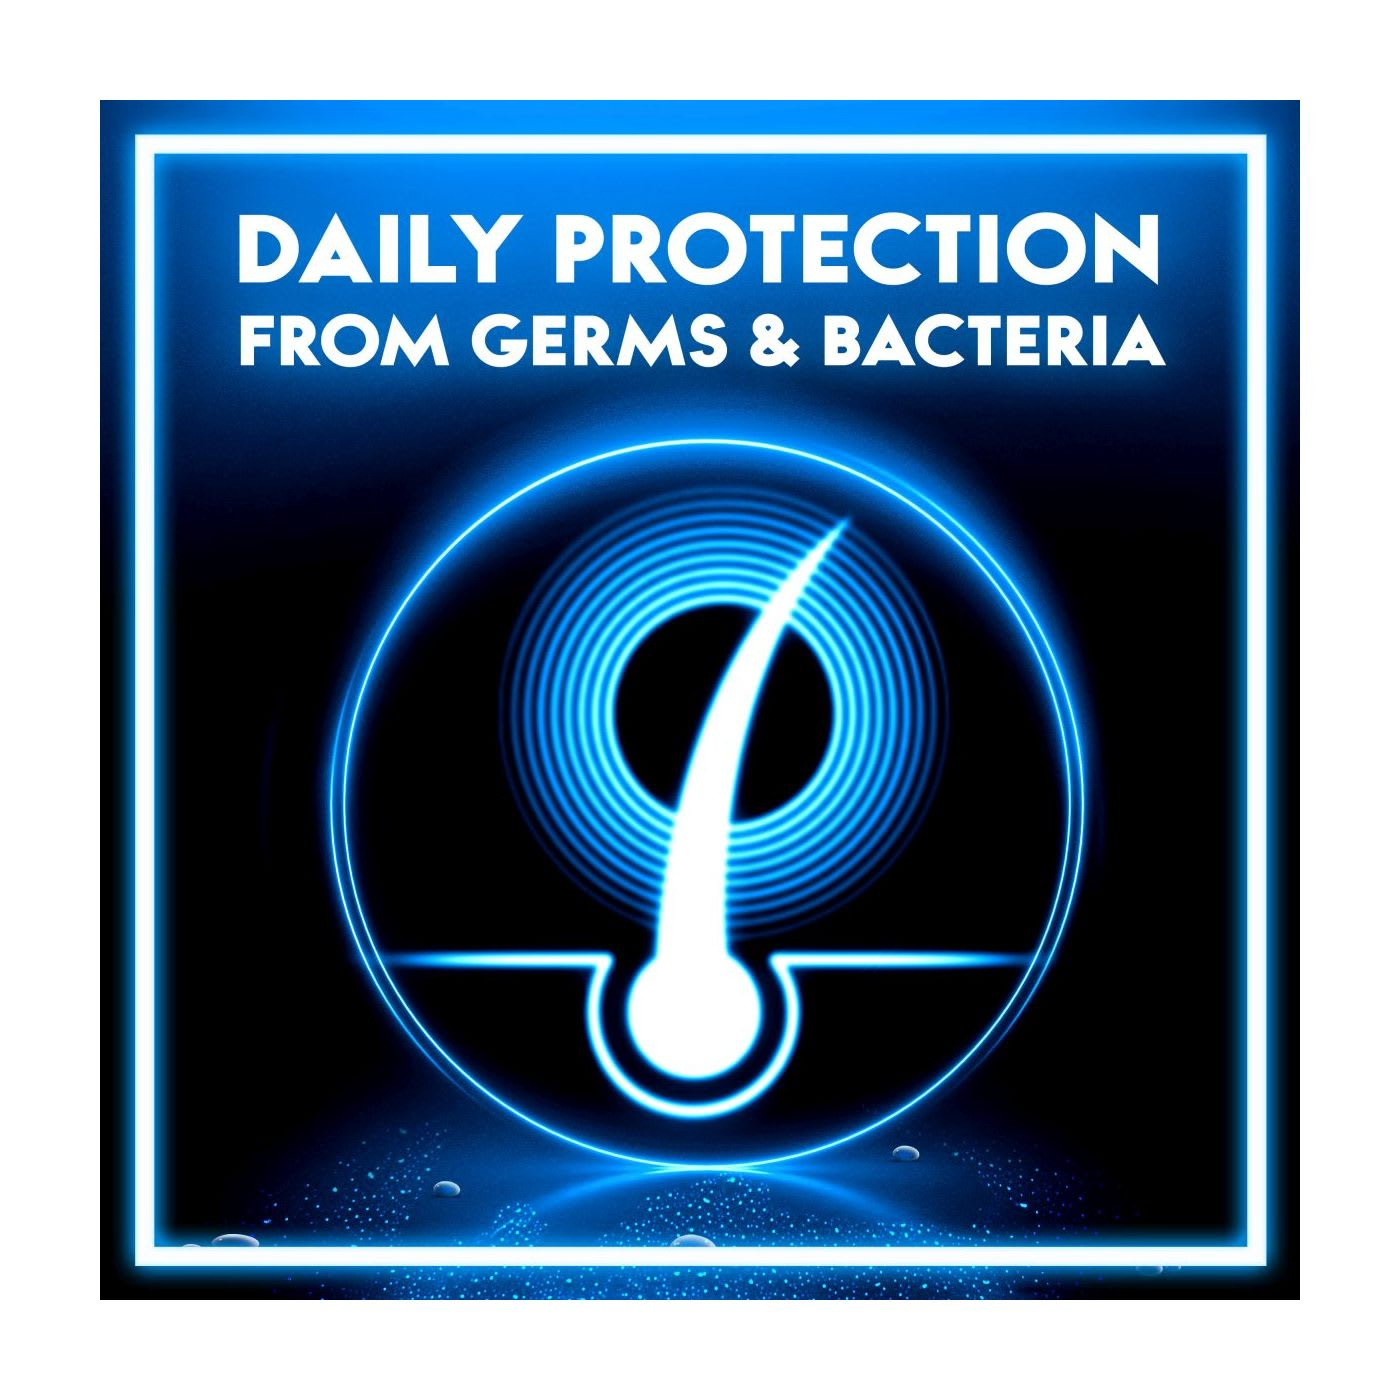 DAILYPROTECTIONshampoo400mlG5HSClassicClean%20400mlSI02option21